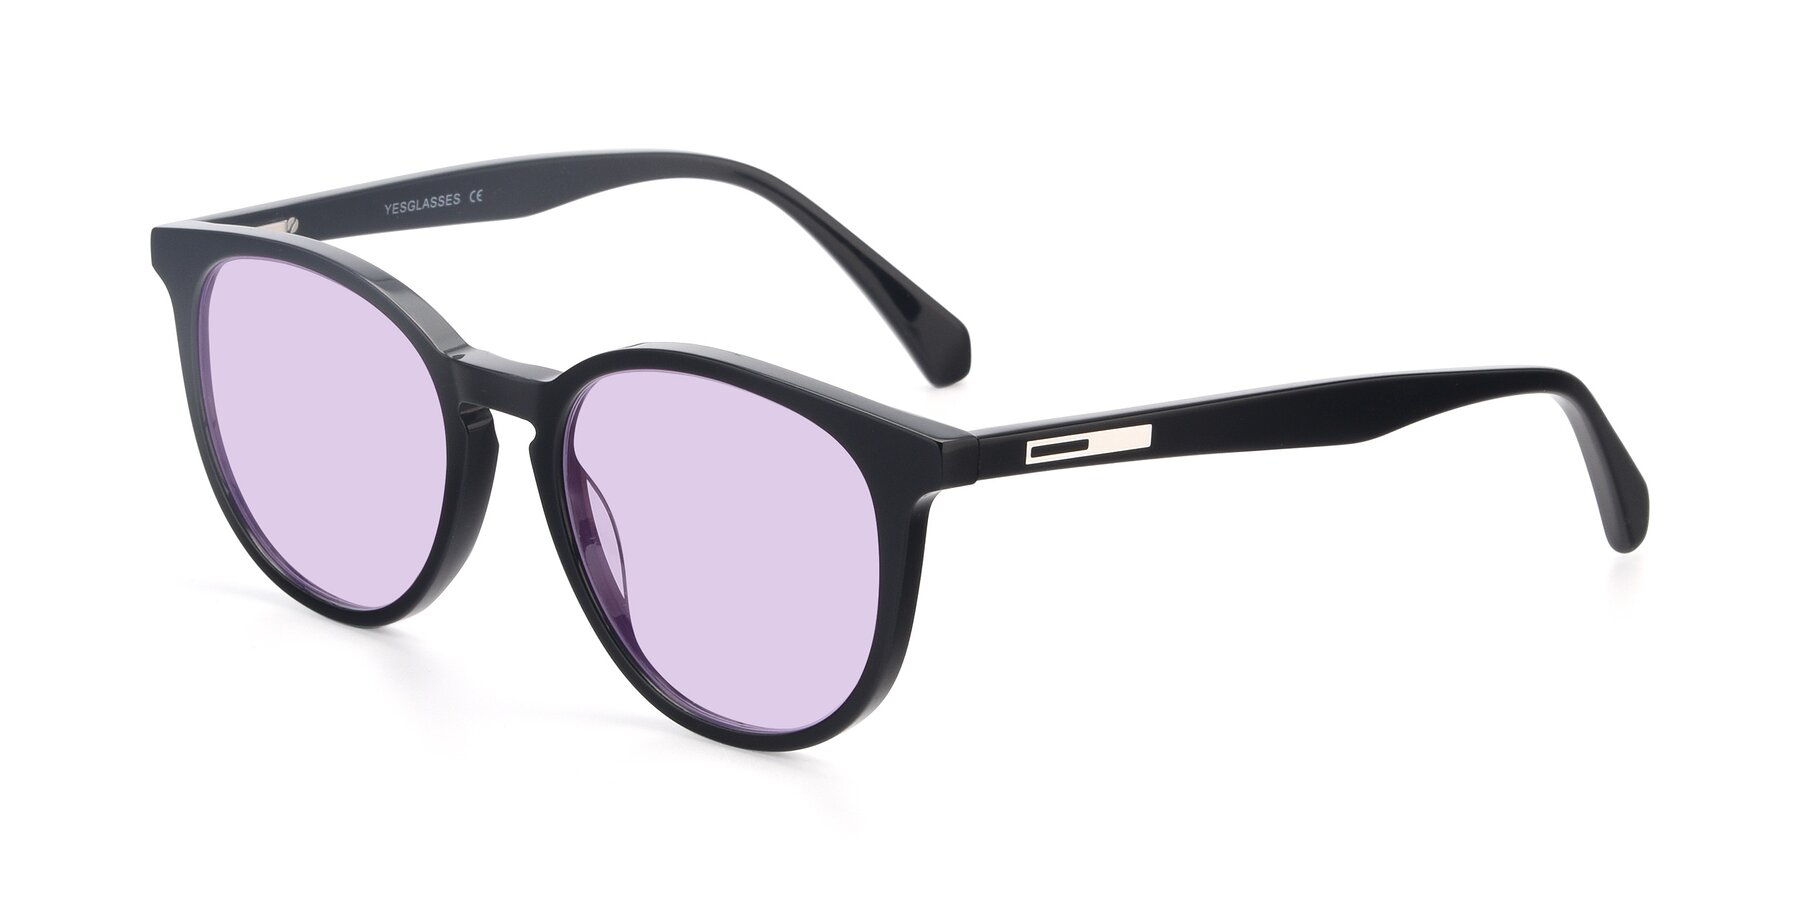 Angle of 17721 in Black with Light Purple Tinted Lenses